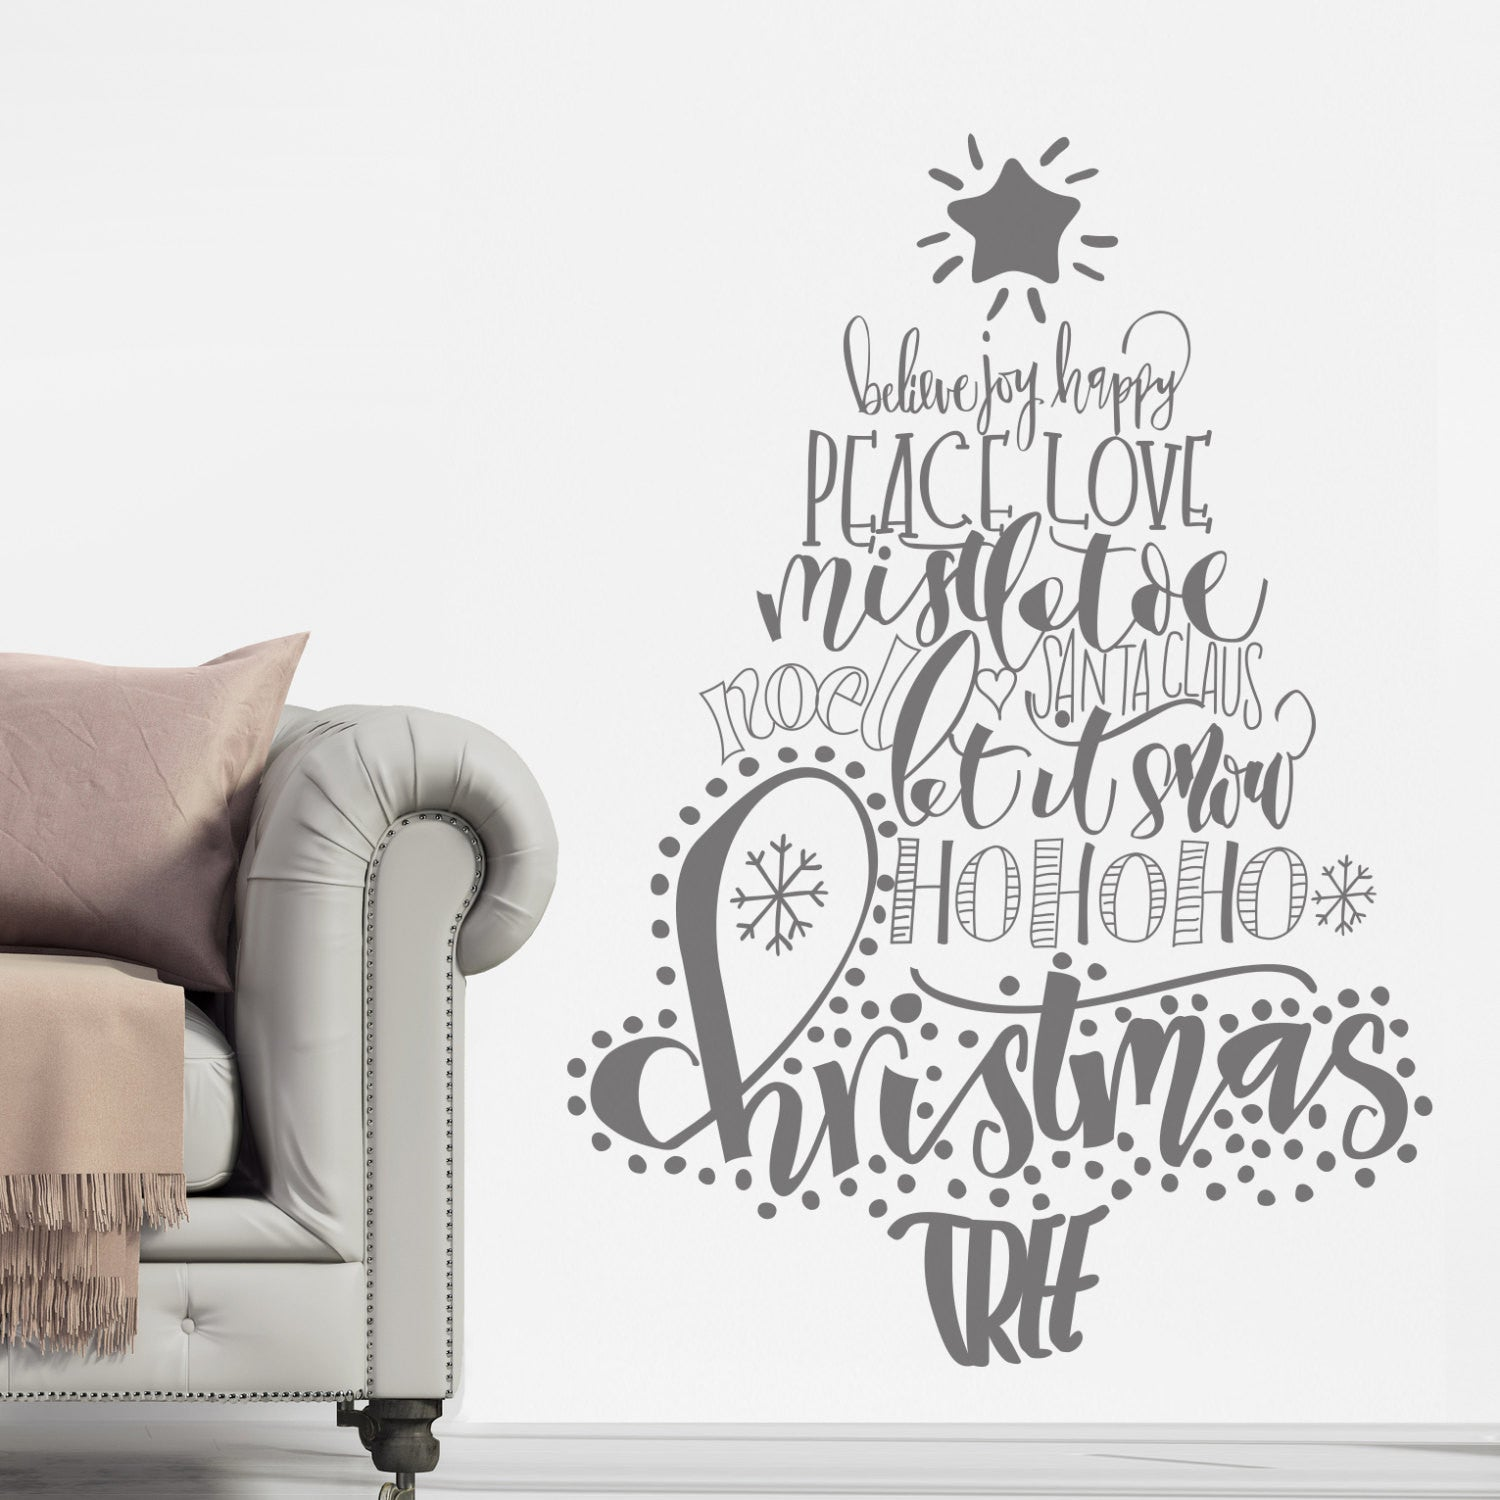 Nutmeg Wall Stickers Nutmeg Studio - How to make large vinyl wall decals with cricut